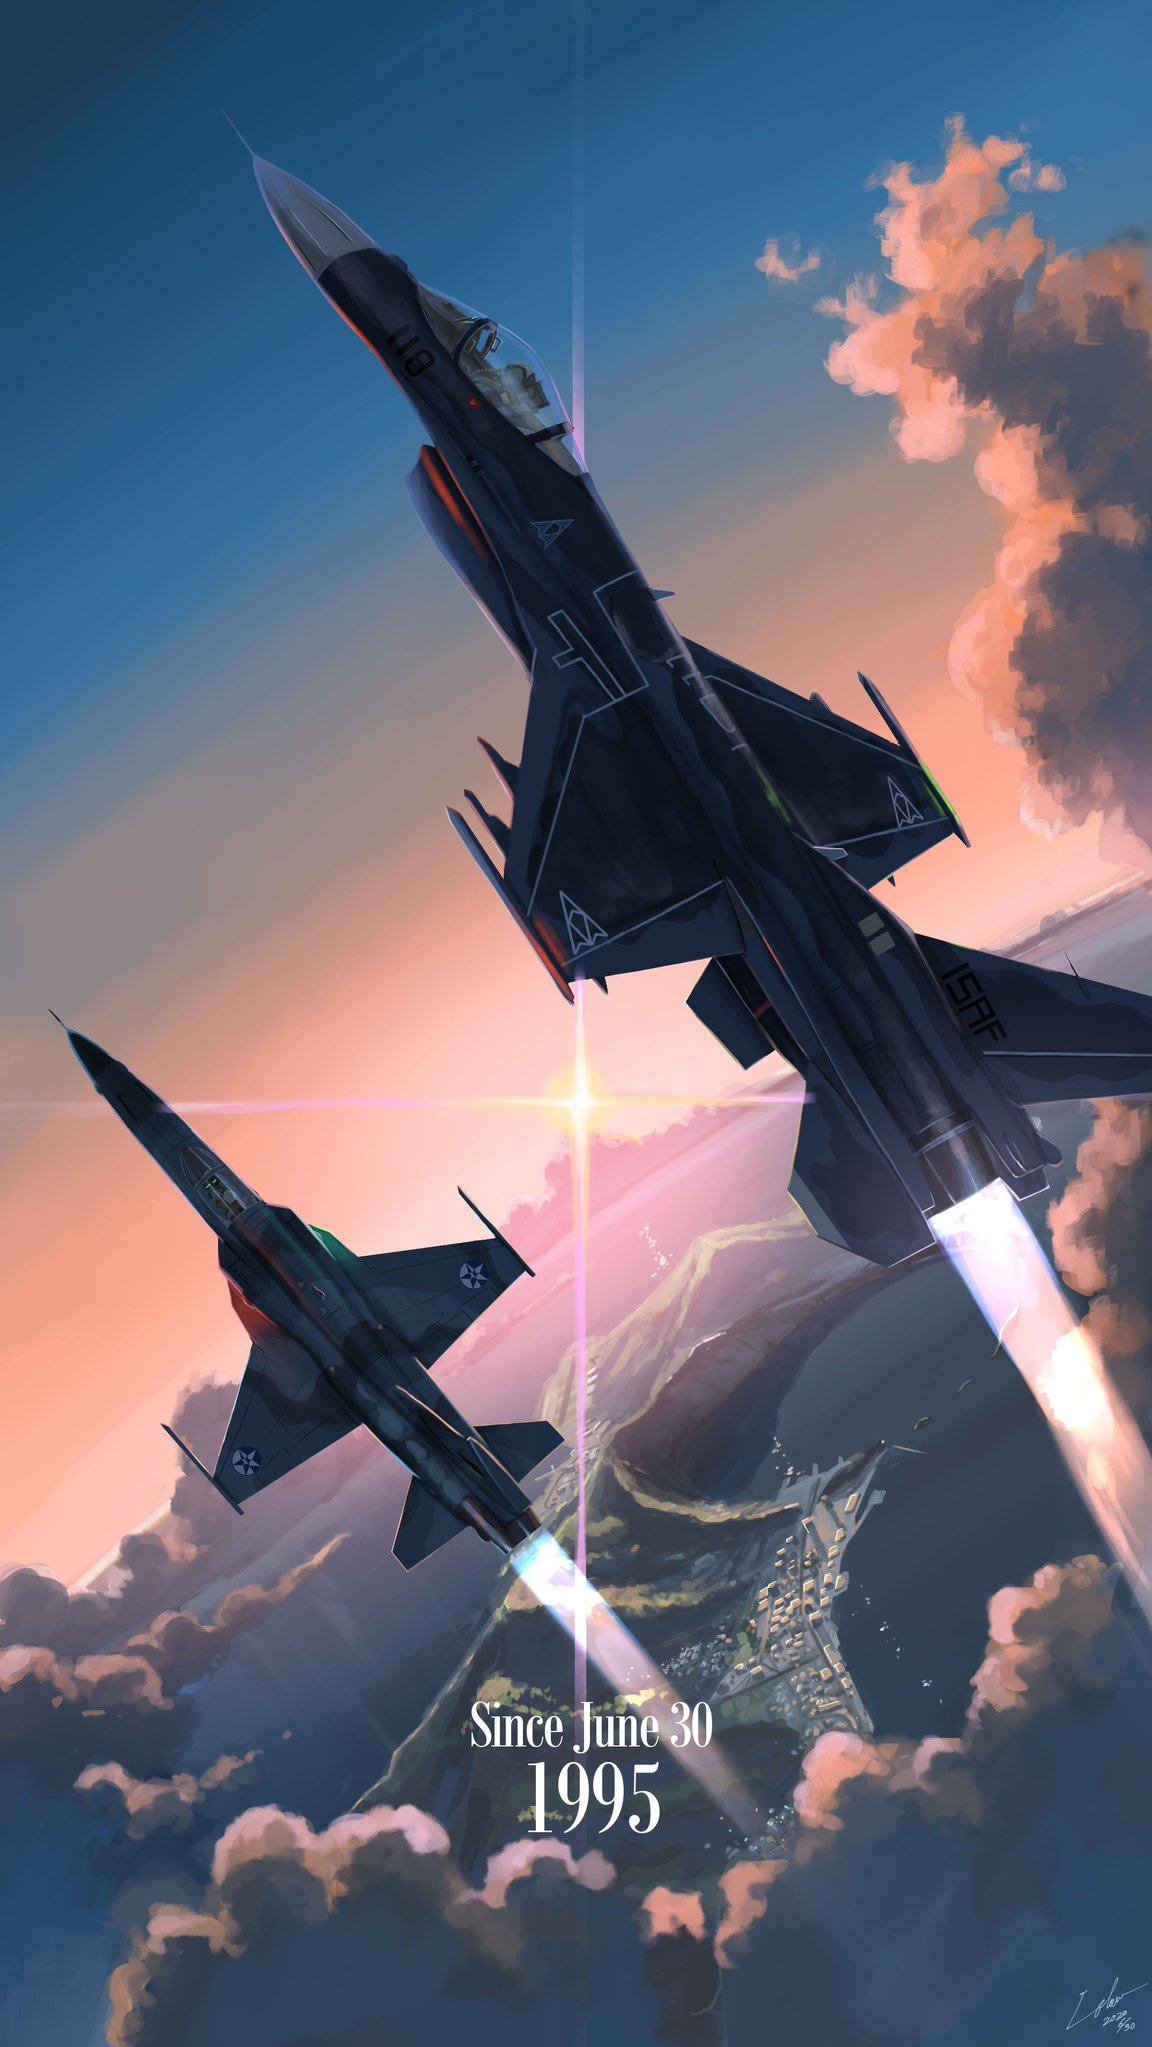 ace_combat ace_combat_04 ace_combat_5 afterburner aircraft airplane anniversary blaze_(ace_combat) city clouds crater emblem f-2 f-5_freedom_fighter fighter_jet highres isaf island jet md5_mismatch military military_vehicle mobius_1 resolution_mismatch source_larger sun sunset utachy